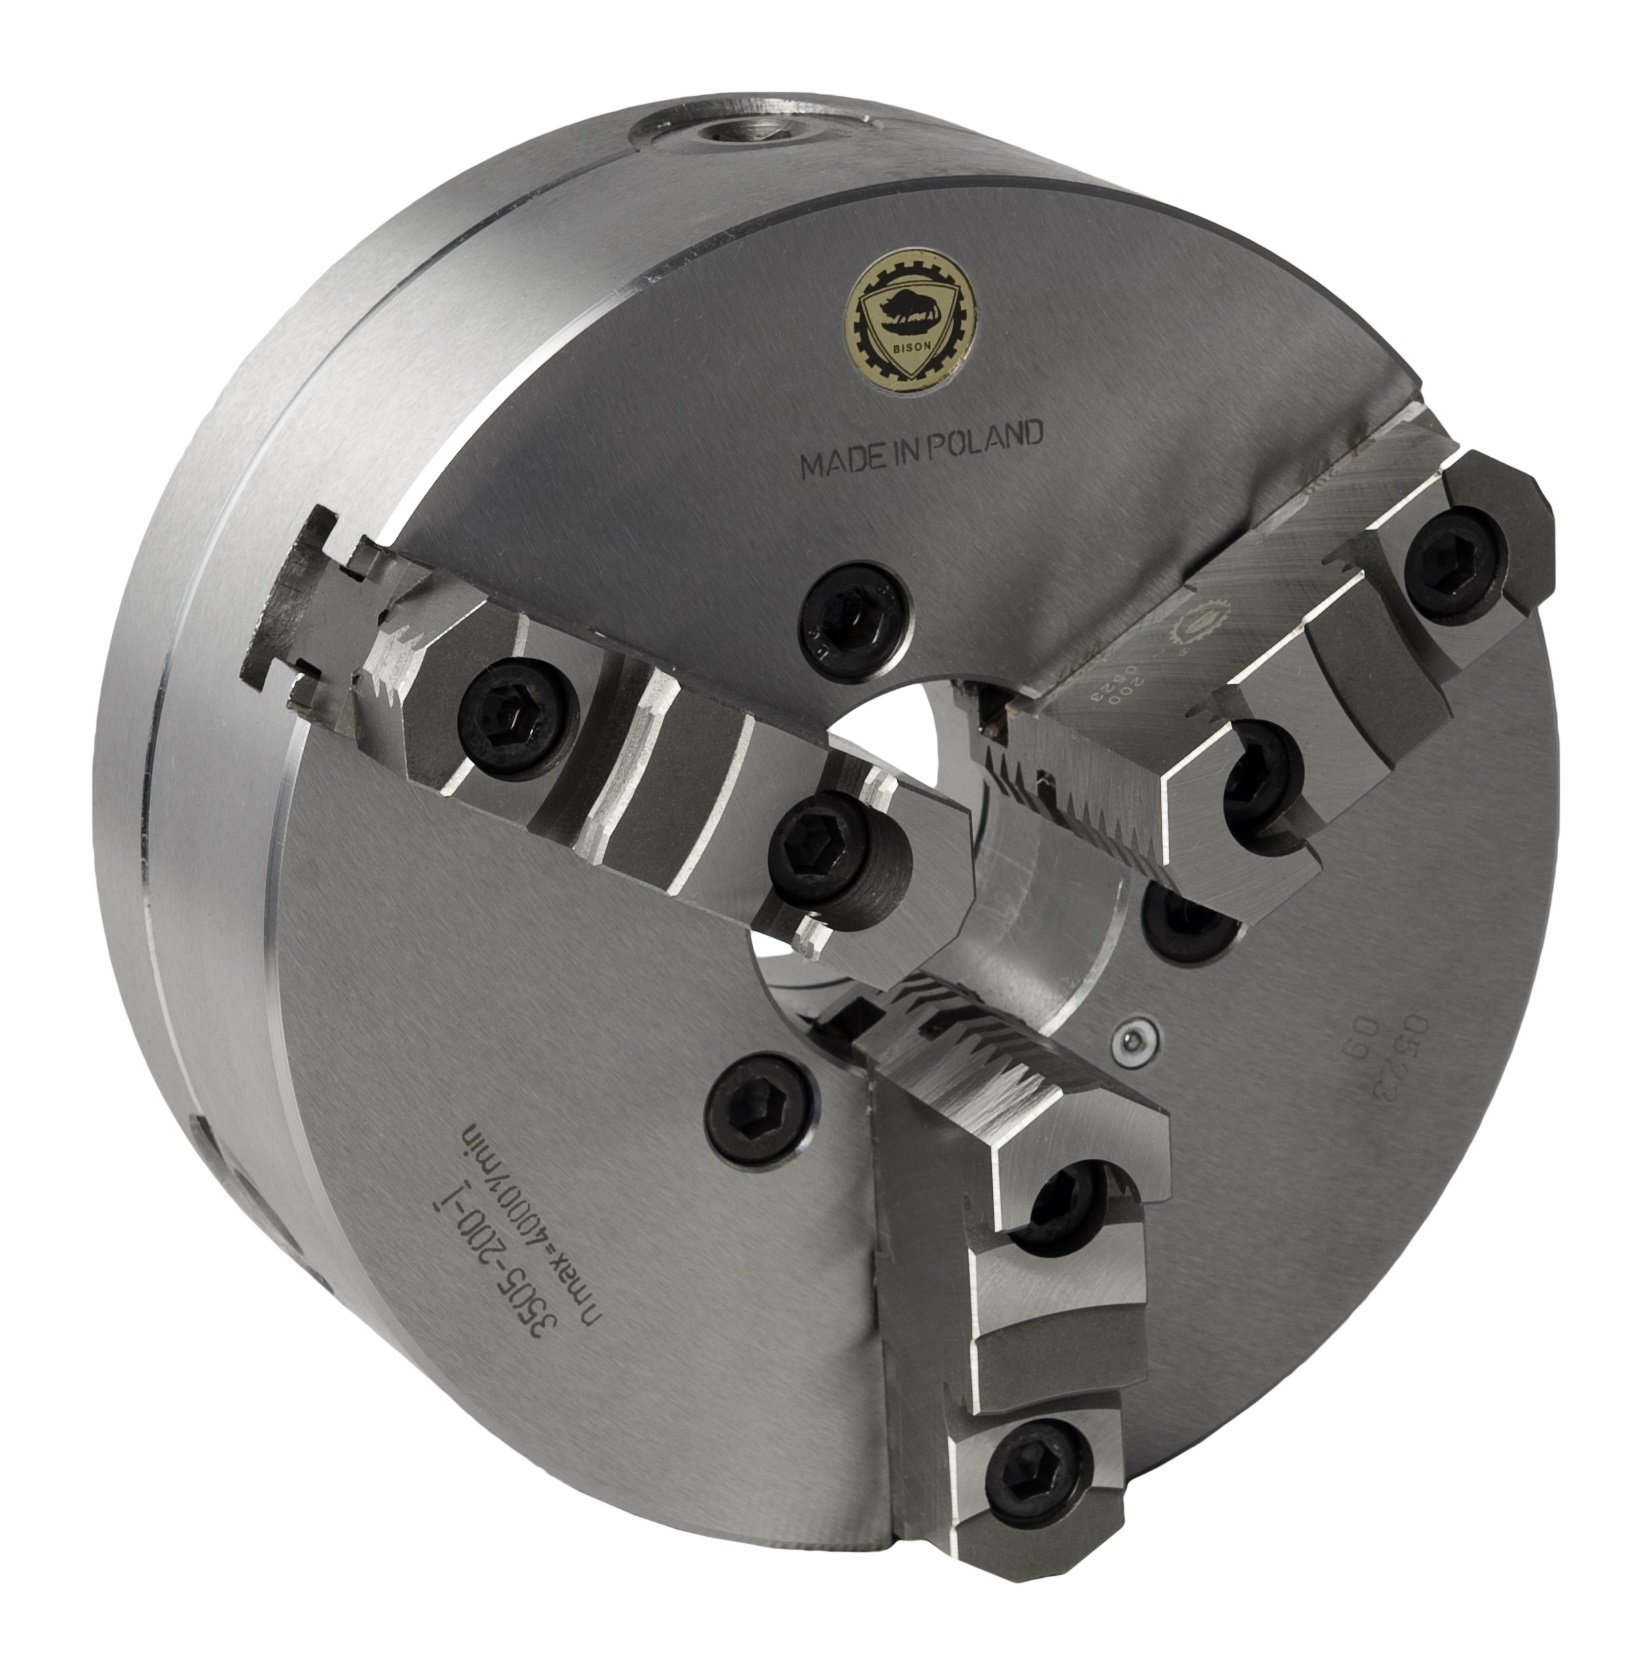 Bison 3505 3-Jaw Steel Self-Centring Scroll Chuck with Plain Back Mounting - DIN 6350.